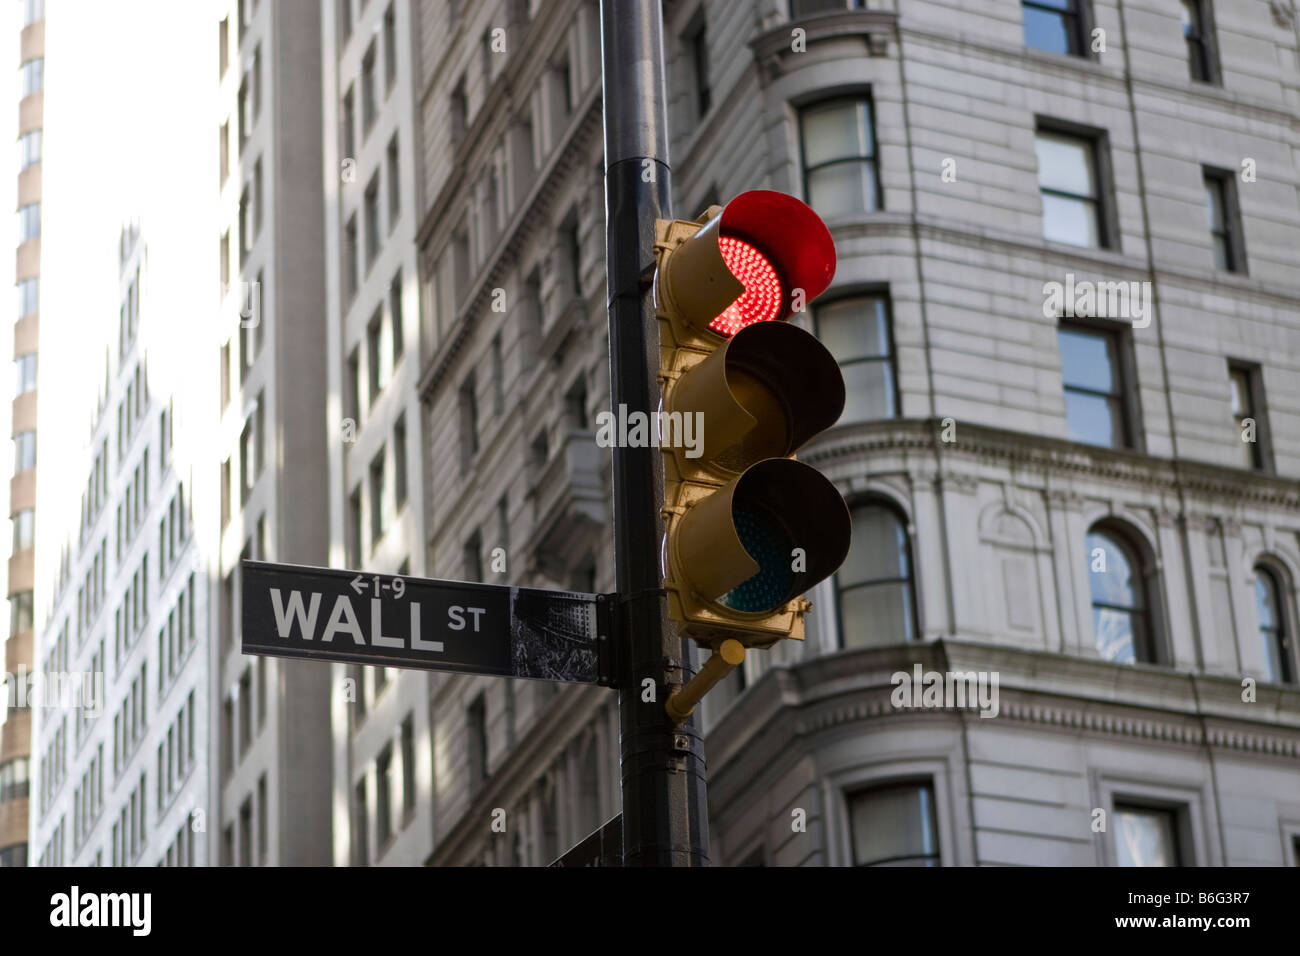 A Wall Street street sign is seen next to a red traffic light in New York, NY. - Stock Image